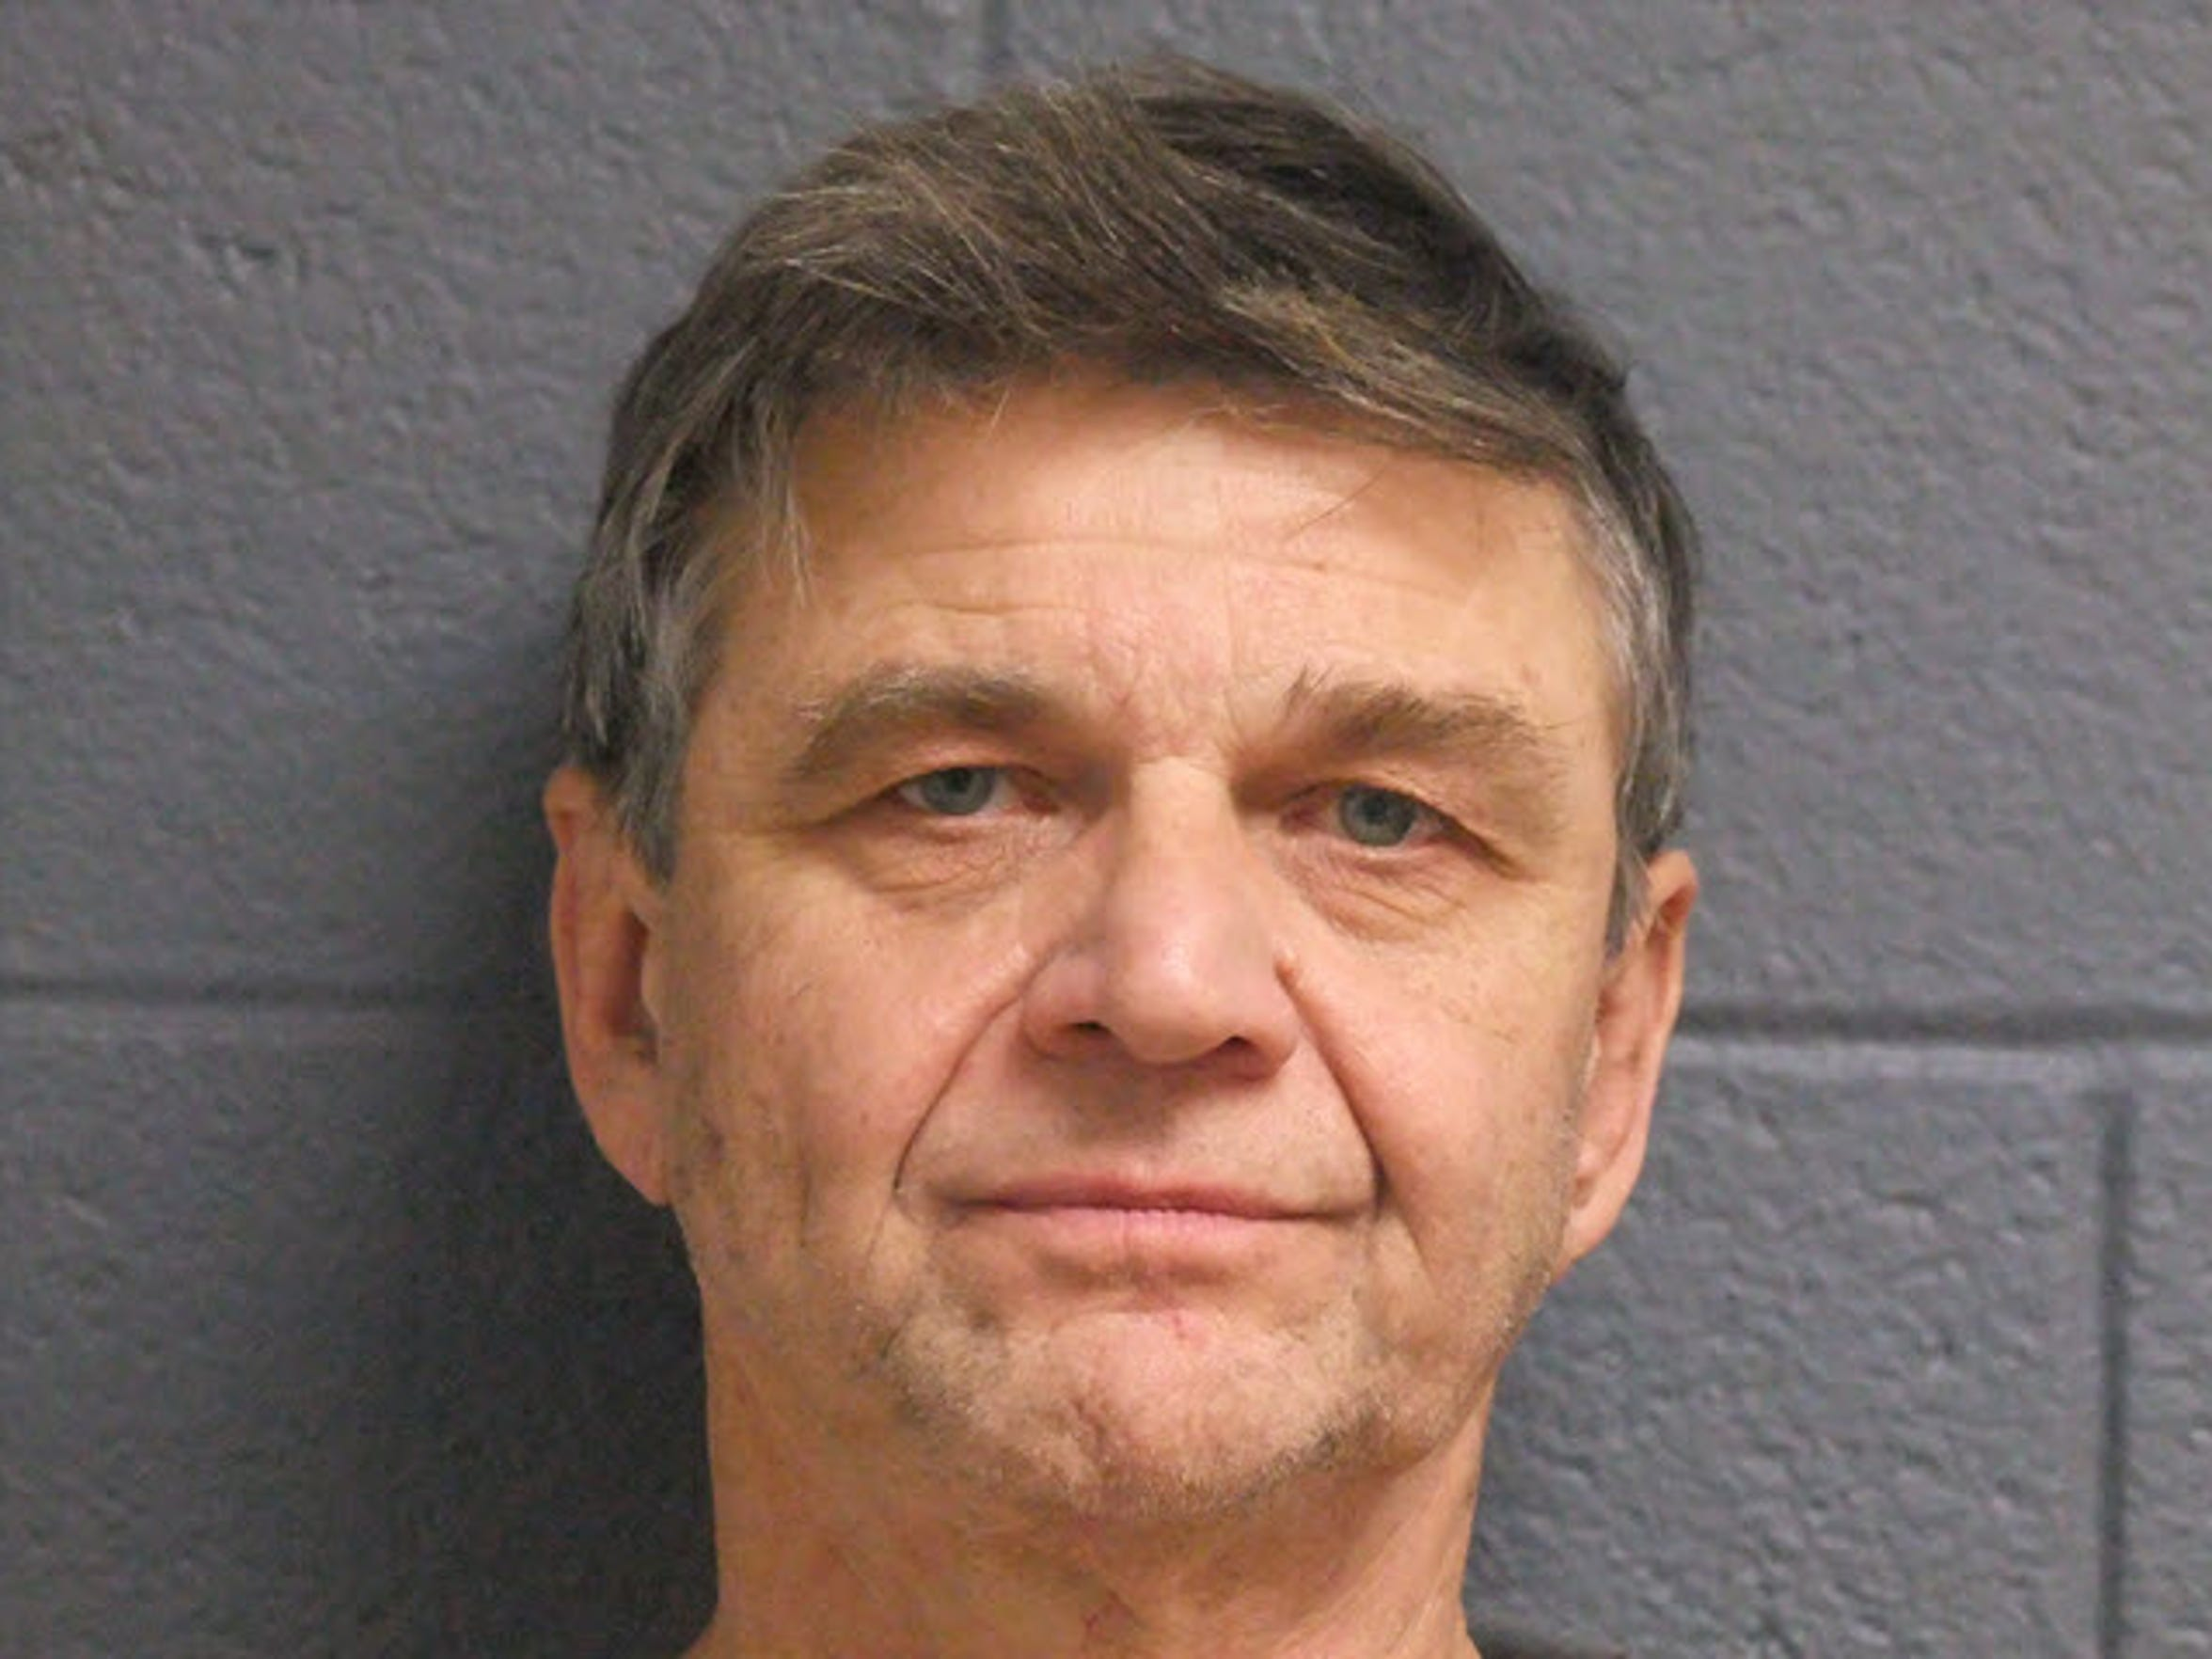 Erv Brinker in his mugshot taken Jan. 15. The former